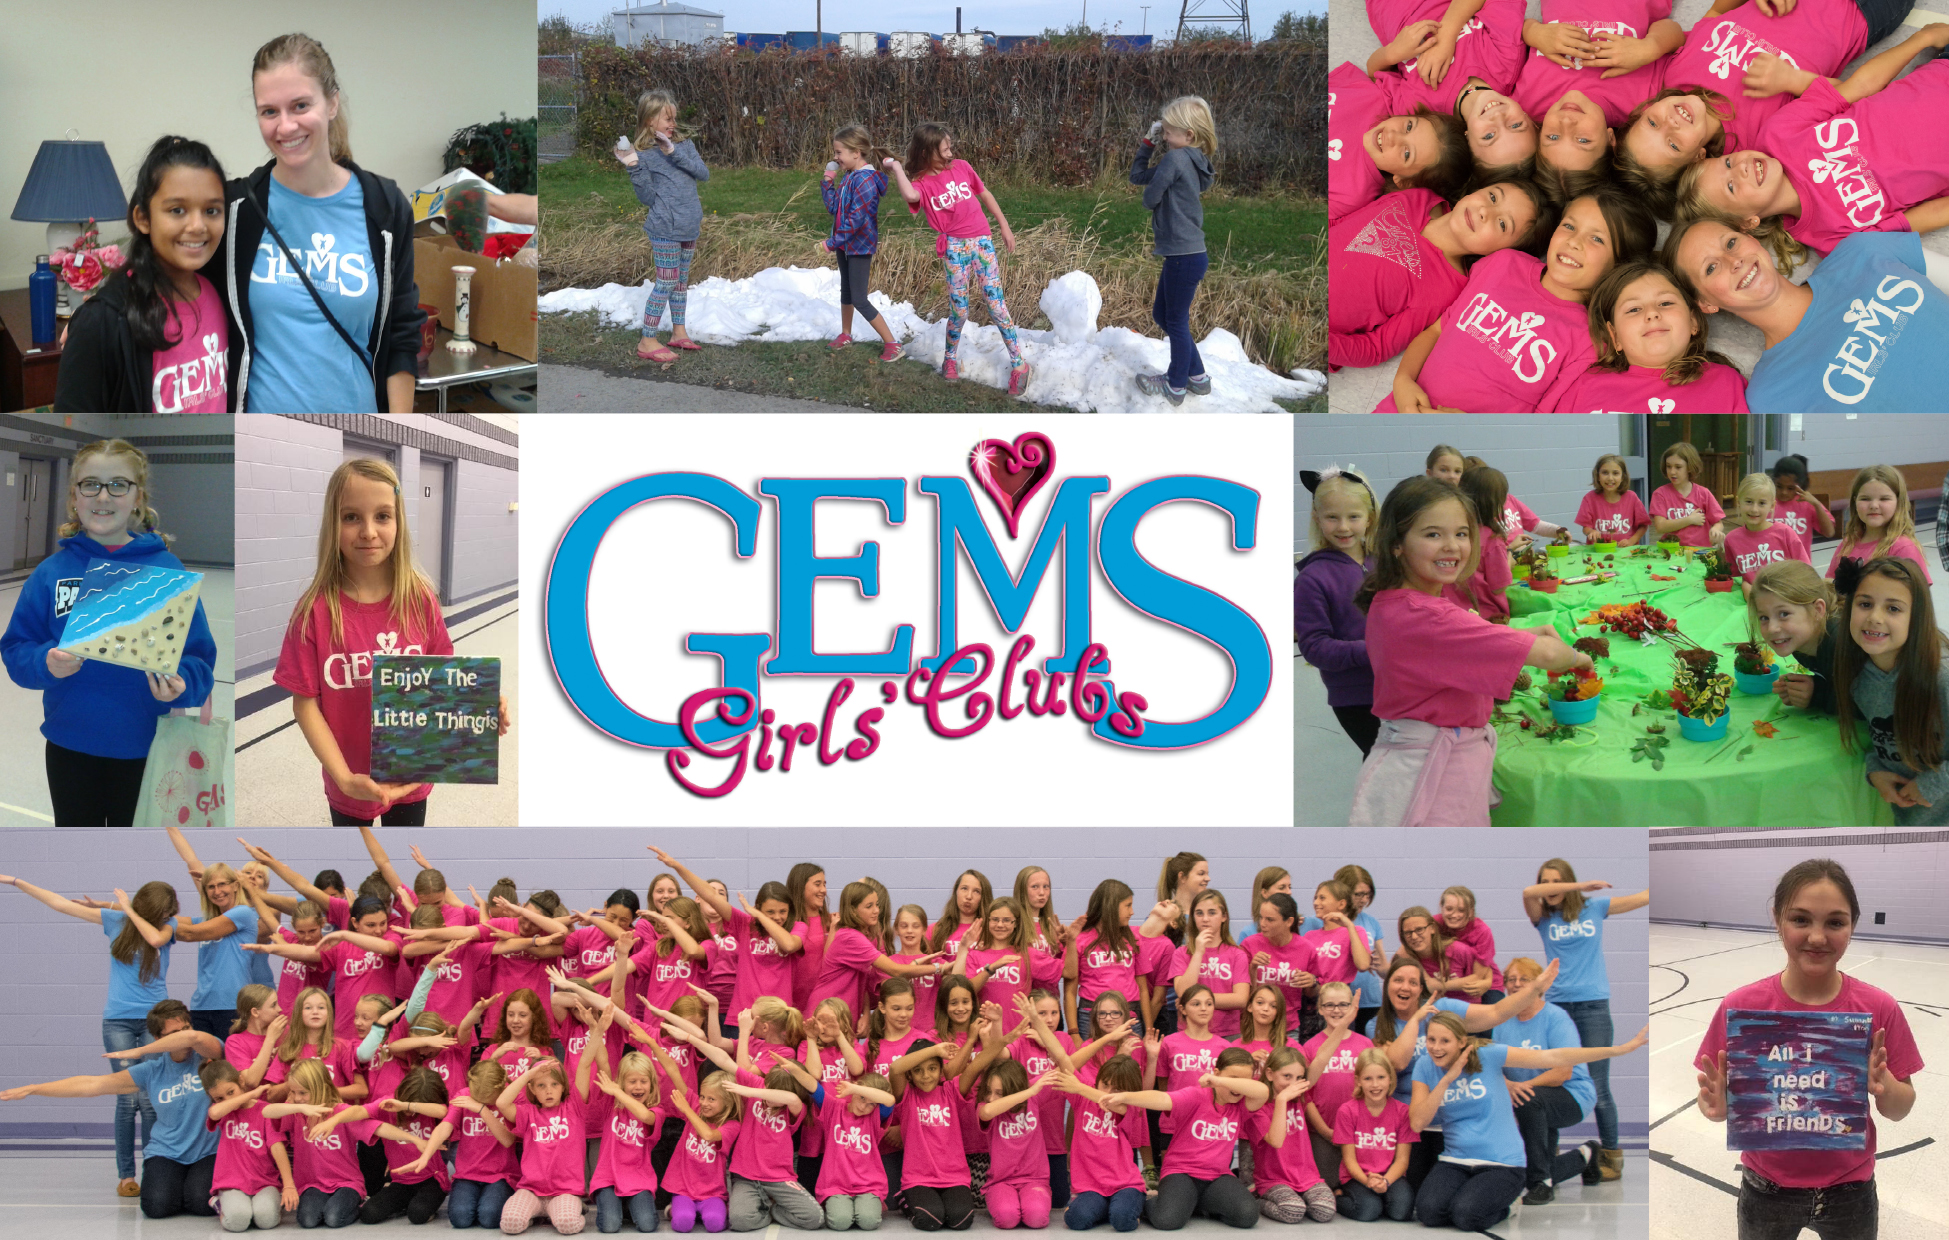 Gems Girls Club - Girls Grade 3-8 gather every Wednesday night from 7-8:30 pmlearning and creating projects and playing games.More